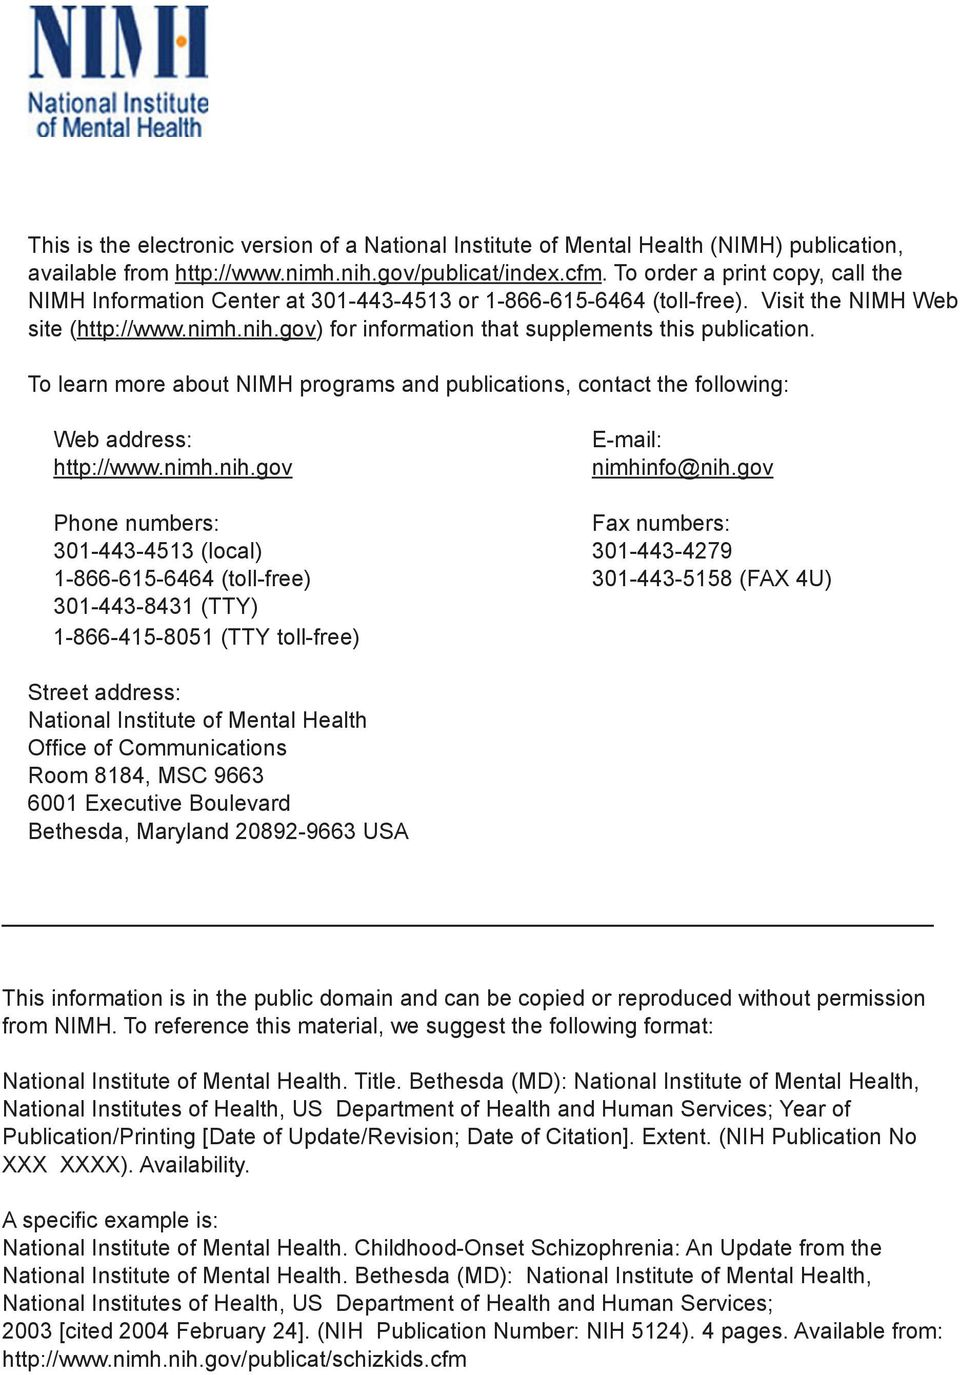 gov) for information that supplements this publication. To learn more about NIMH programs and publications, contact the following: Web address: http://www.nimh.nih.gov E-mail: nimhinfo@nih.